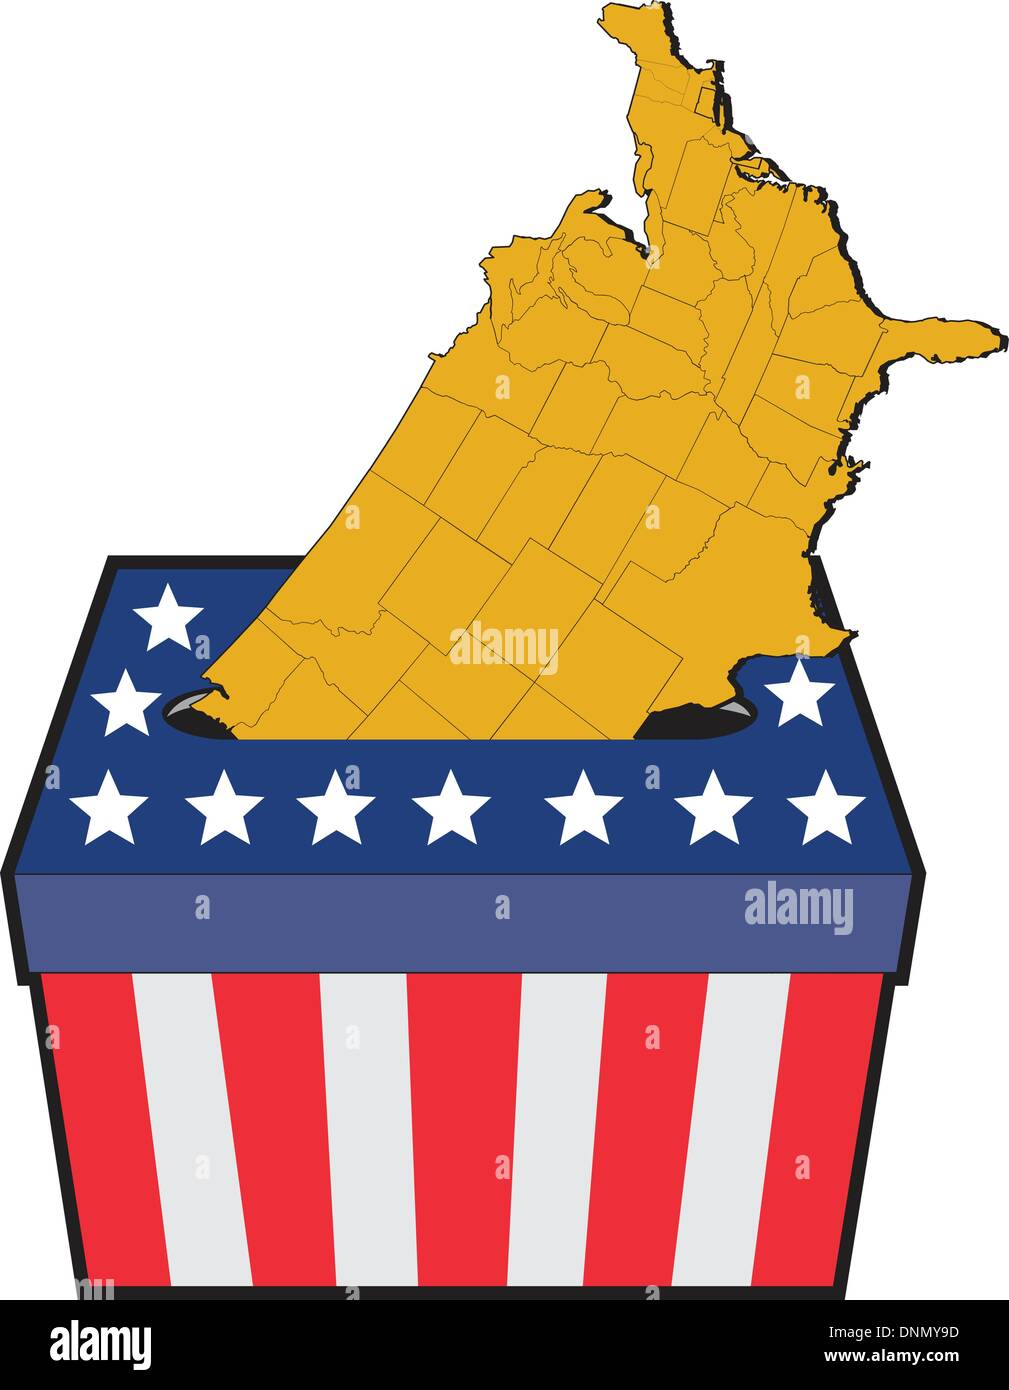 Illustration Of An Election Ballot Box With American Stars And - Us electoral map vector graphic